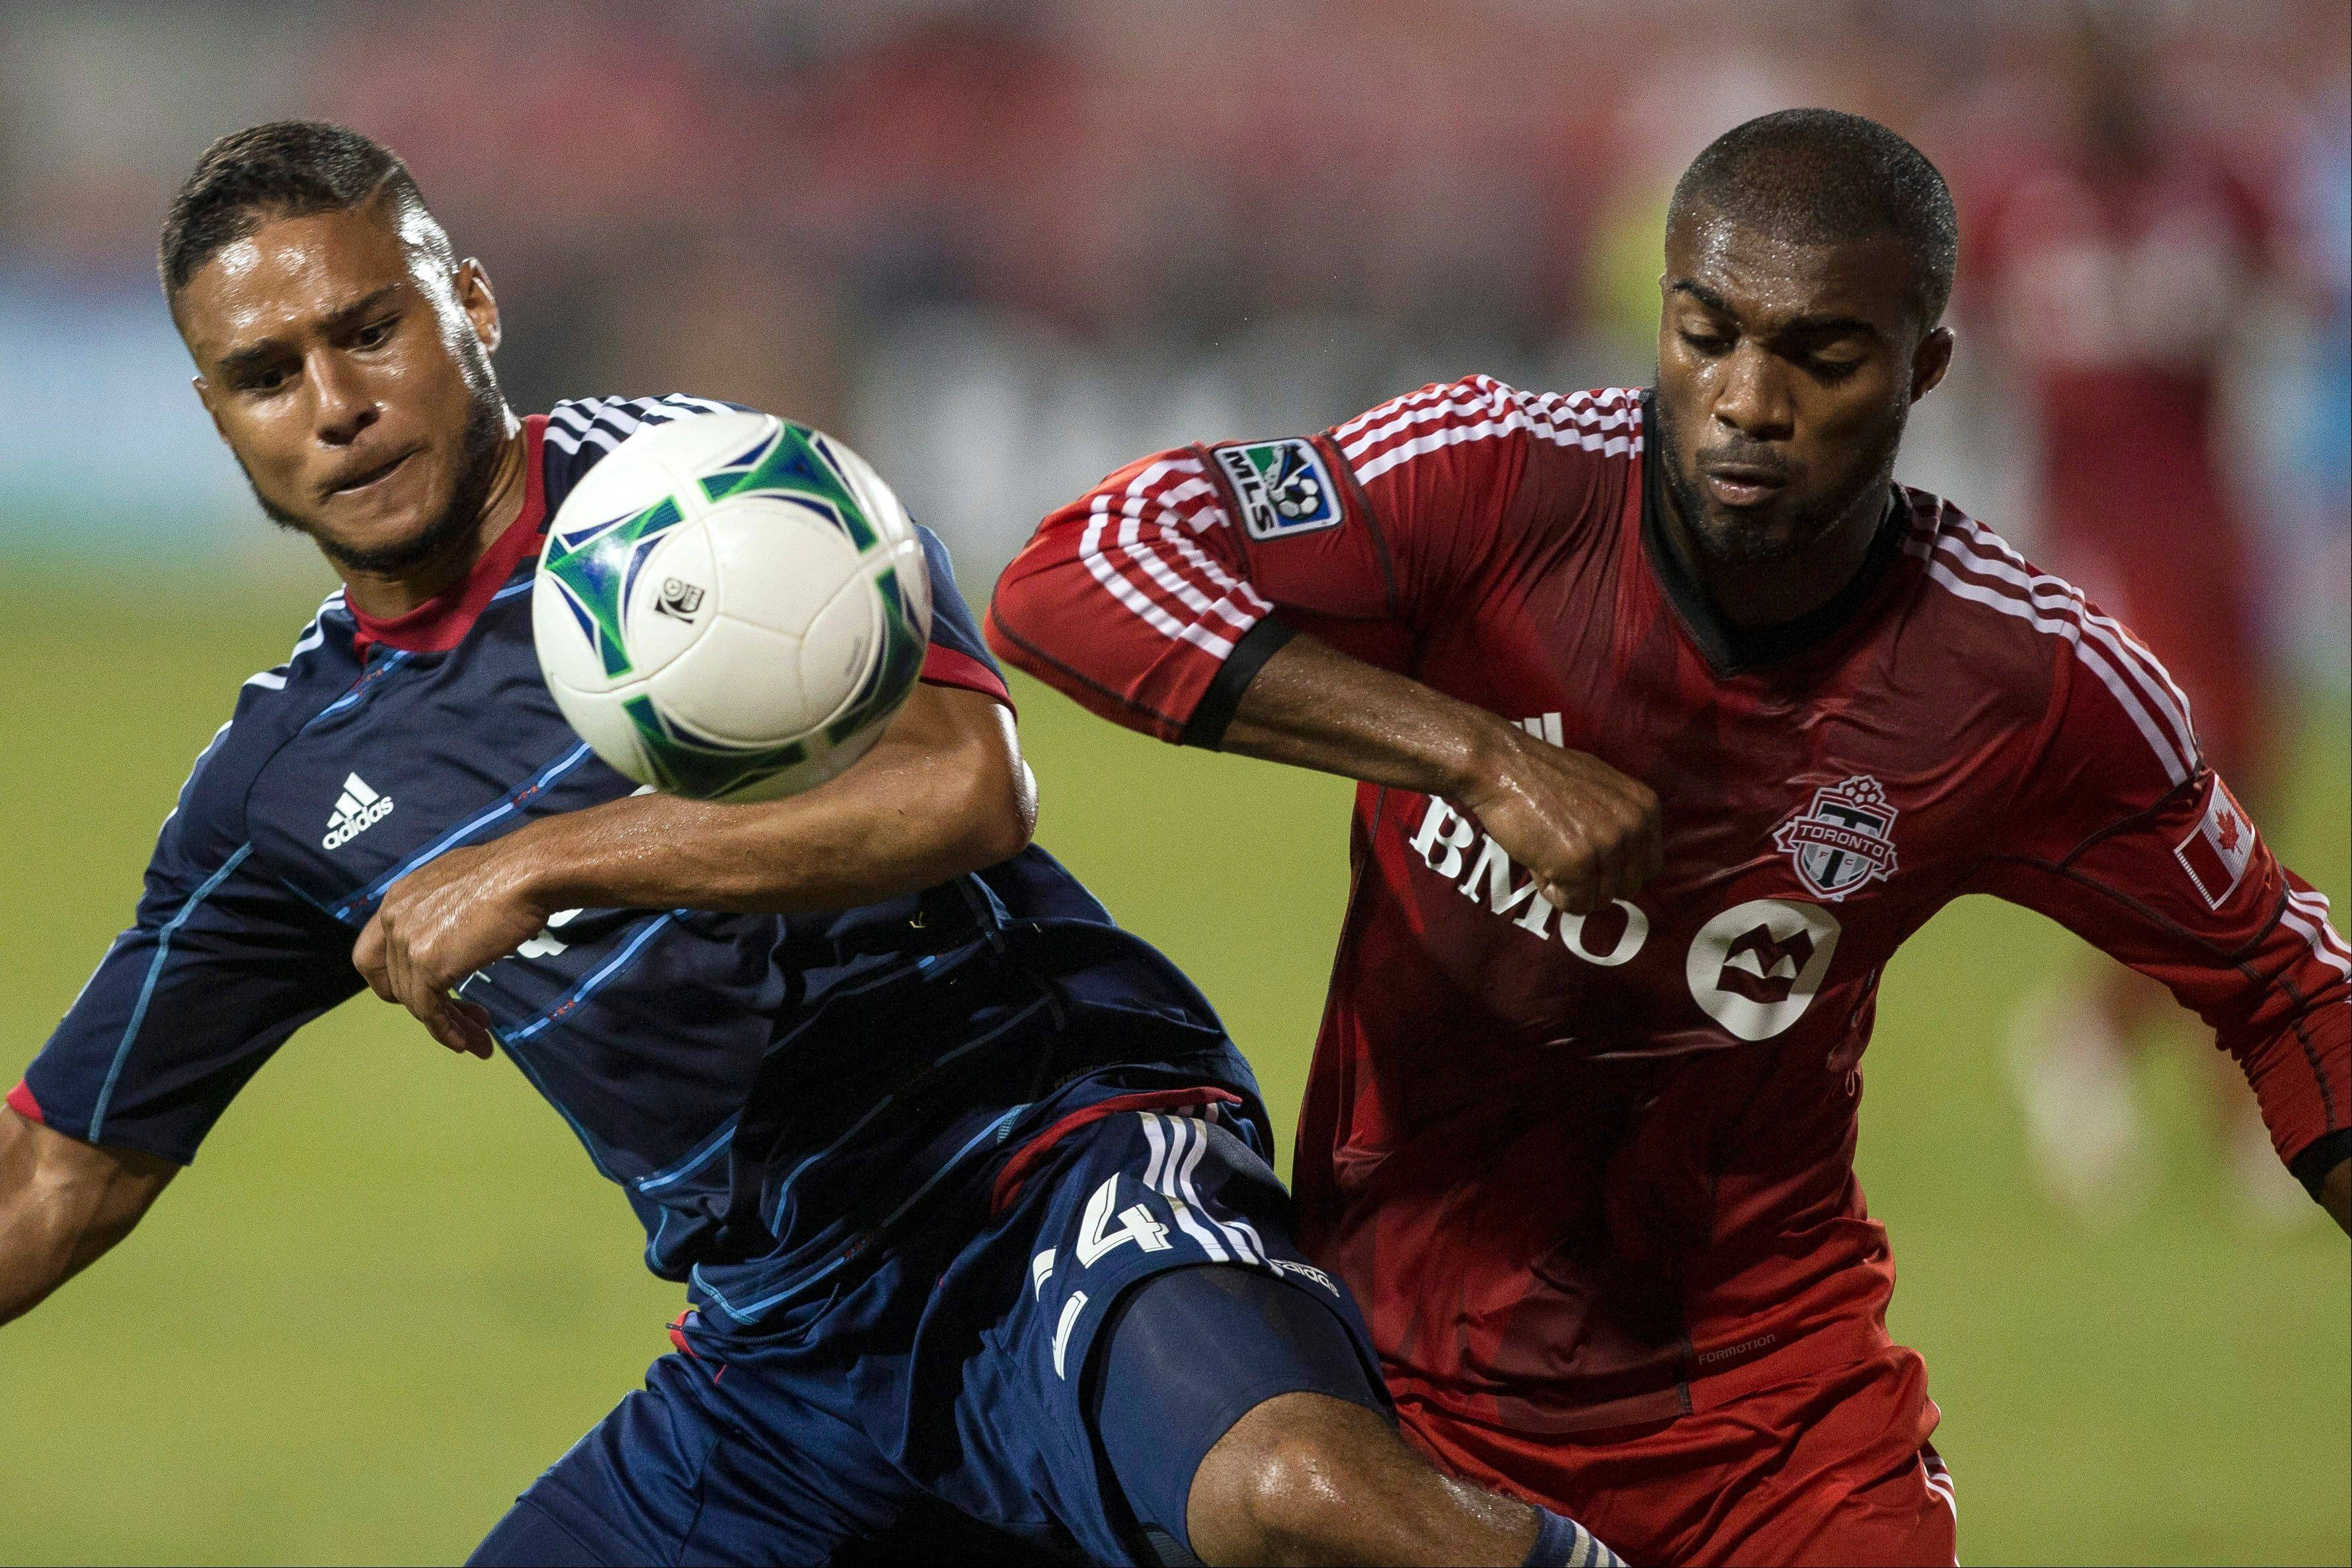 Toronto FC's Ashtone Morgan, right, and Chicago Fire's Quincy Amarikwa battle for control of the ball during their 1-1 game Wednesday night.